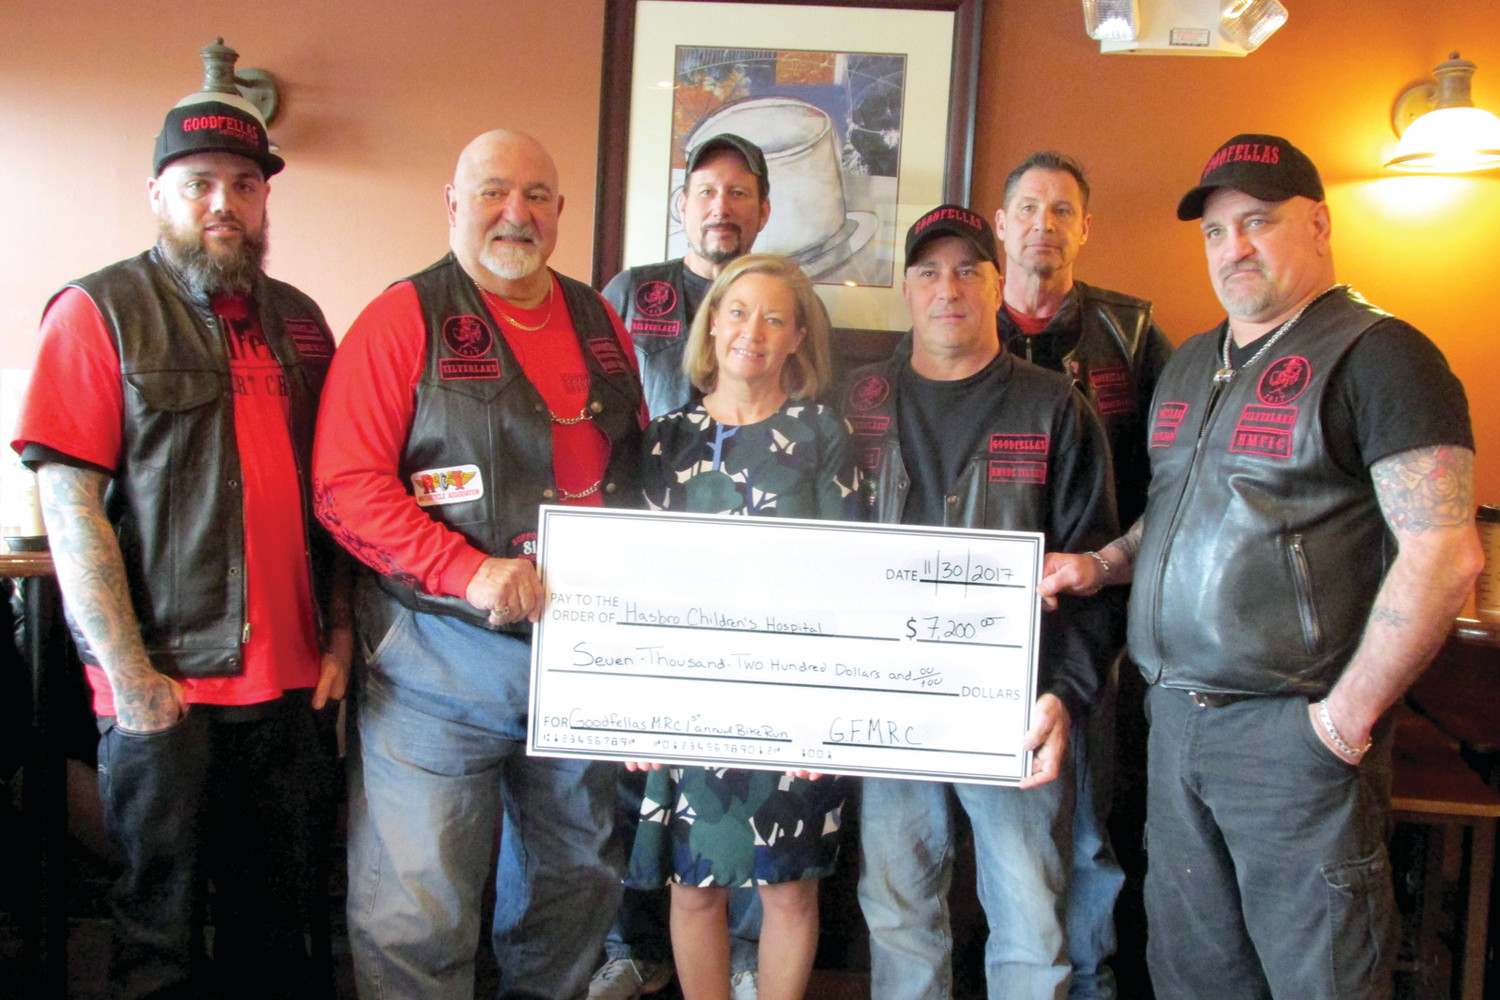 FANTASTIC FOLKS: Michele Branigan, the Senior Major Gifts Officer at Hasbro Children's Hospital, holds a mock check for $7,200 with members of the Goodfellas Motorcycle Club who are, from left: Kurt Stumpf, Cal Calabro, Joe Turchetta, Eugene Benedetti, Jeff Gauch and Lou Pierce. (Sun Rise photos by Pete Fontaine)